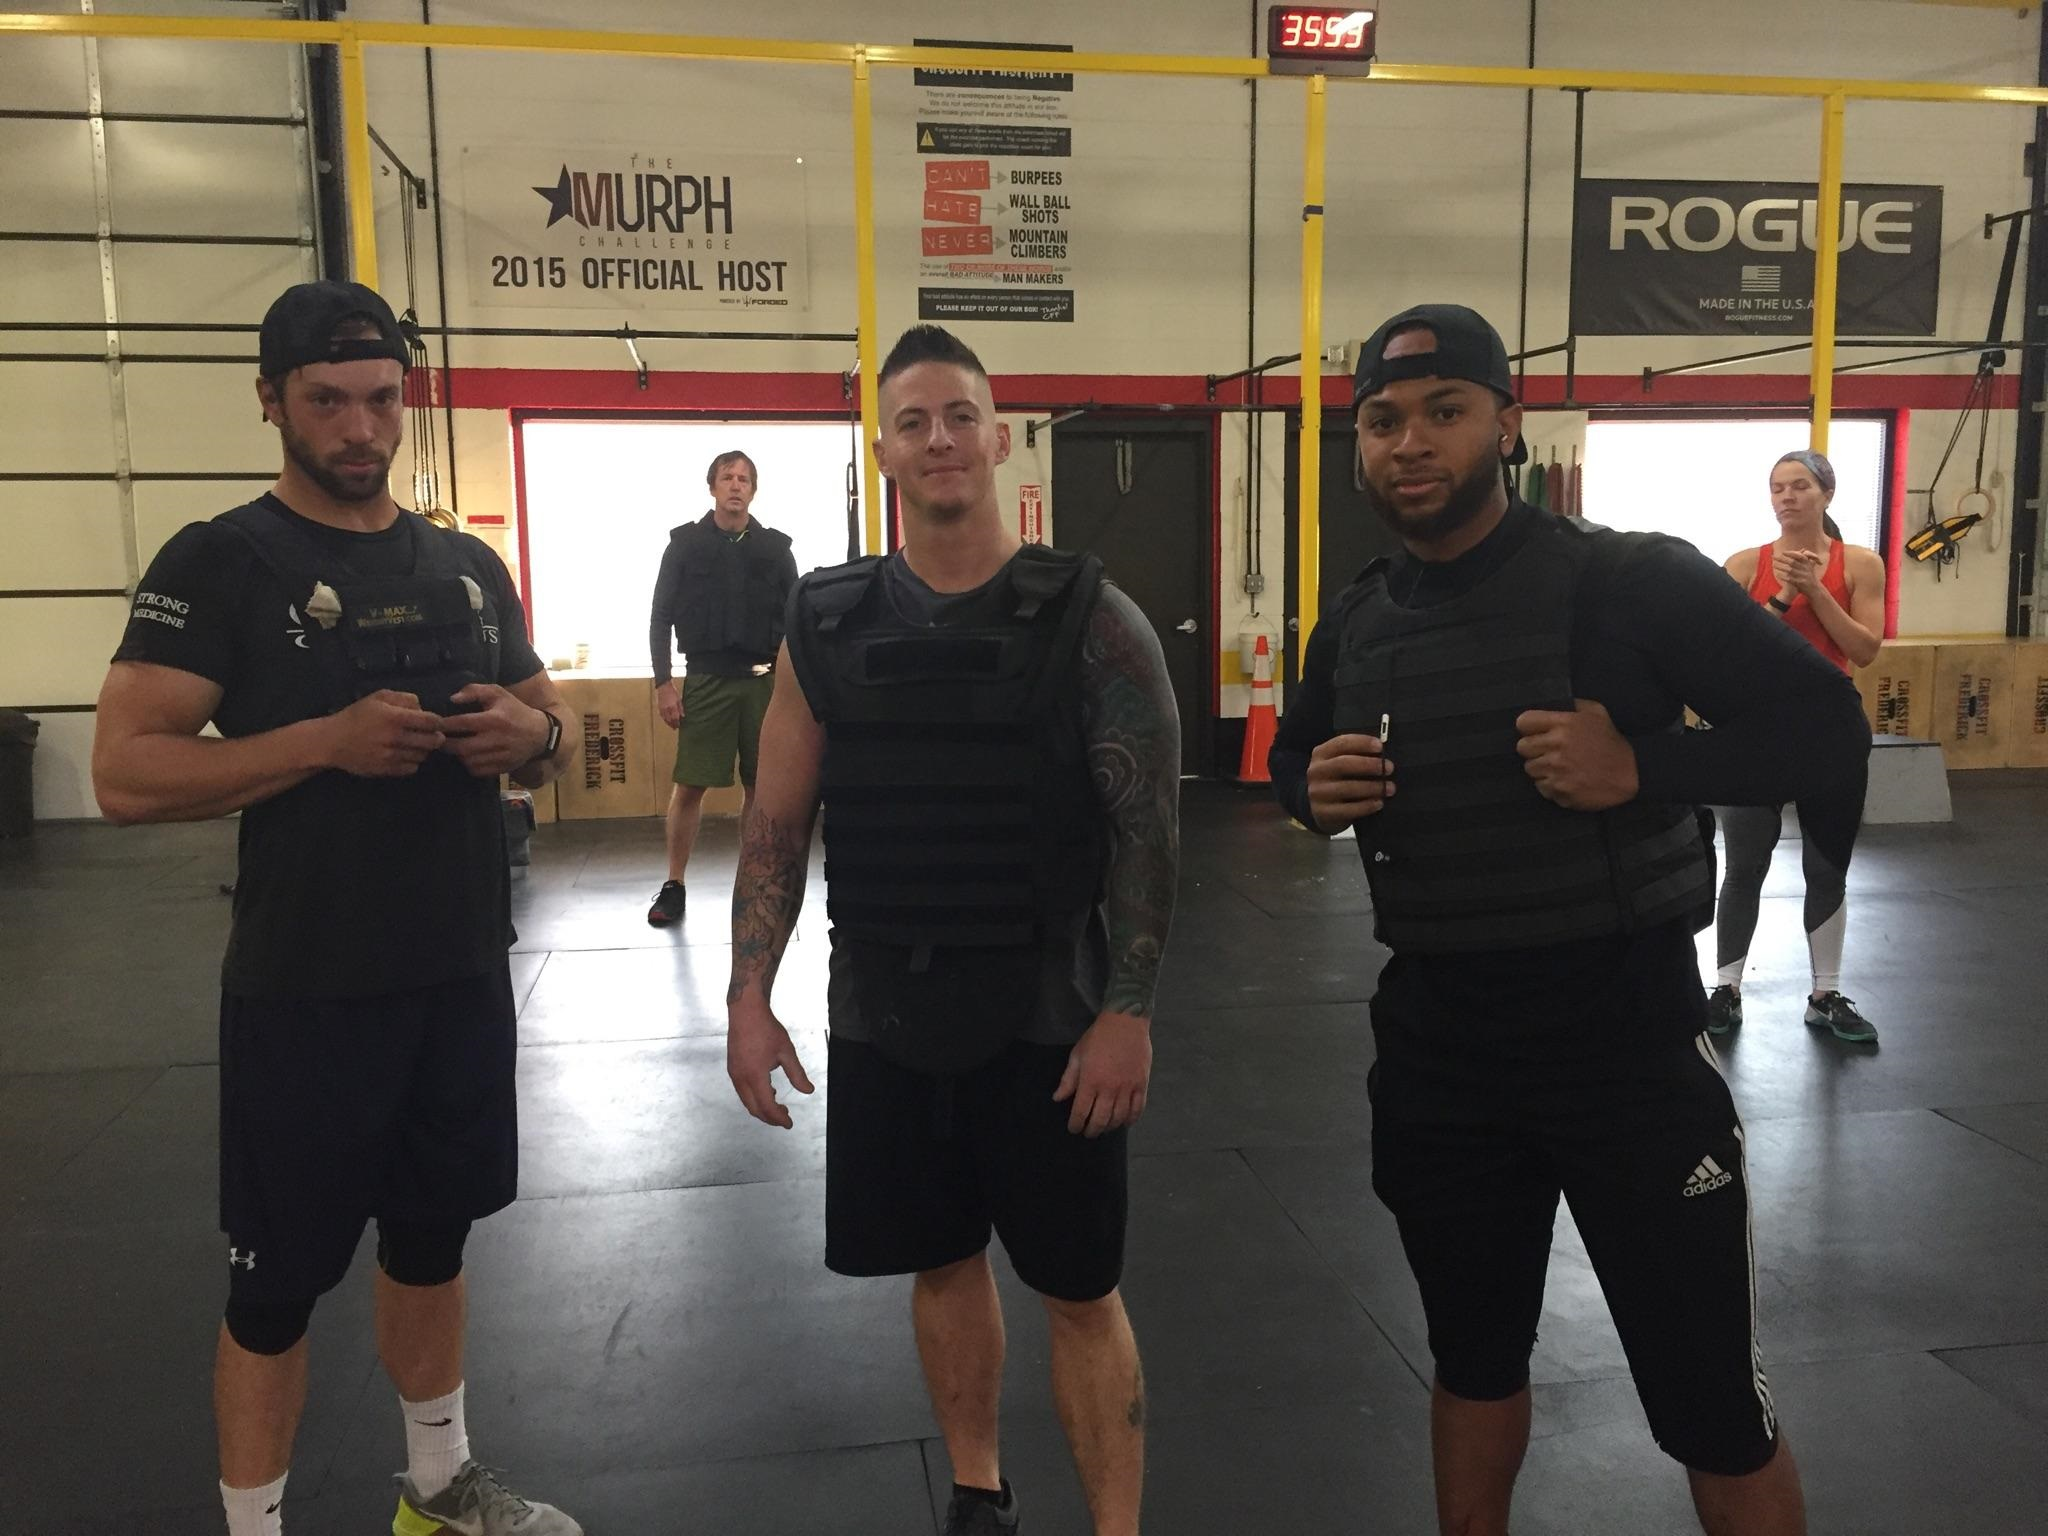 The Weighted vest-ers @ 8am on Saturday.